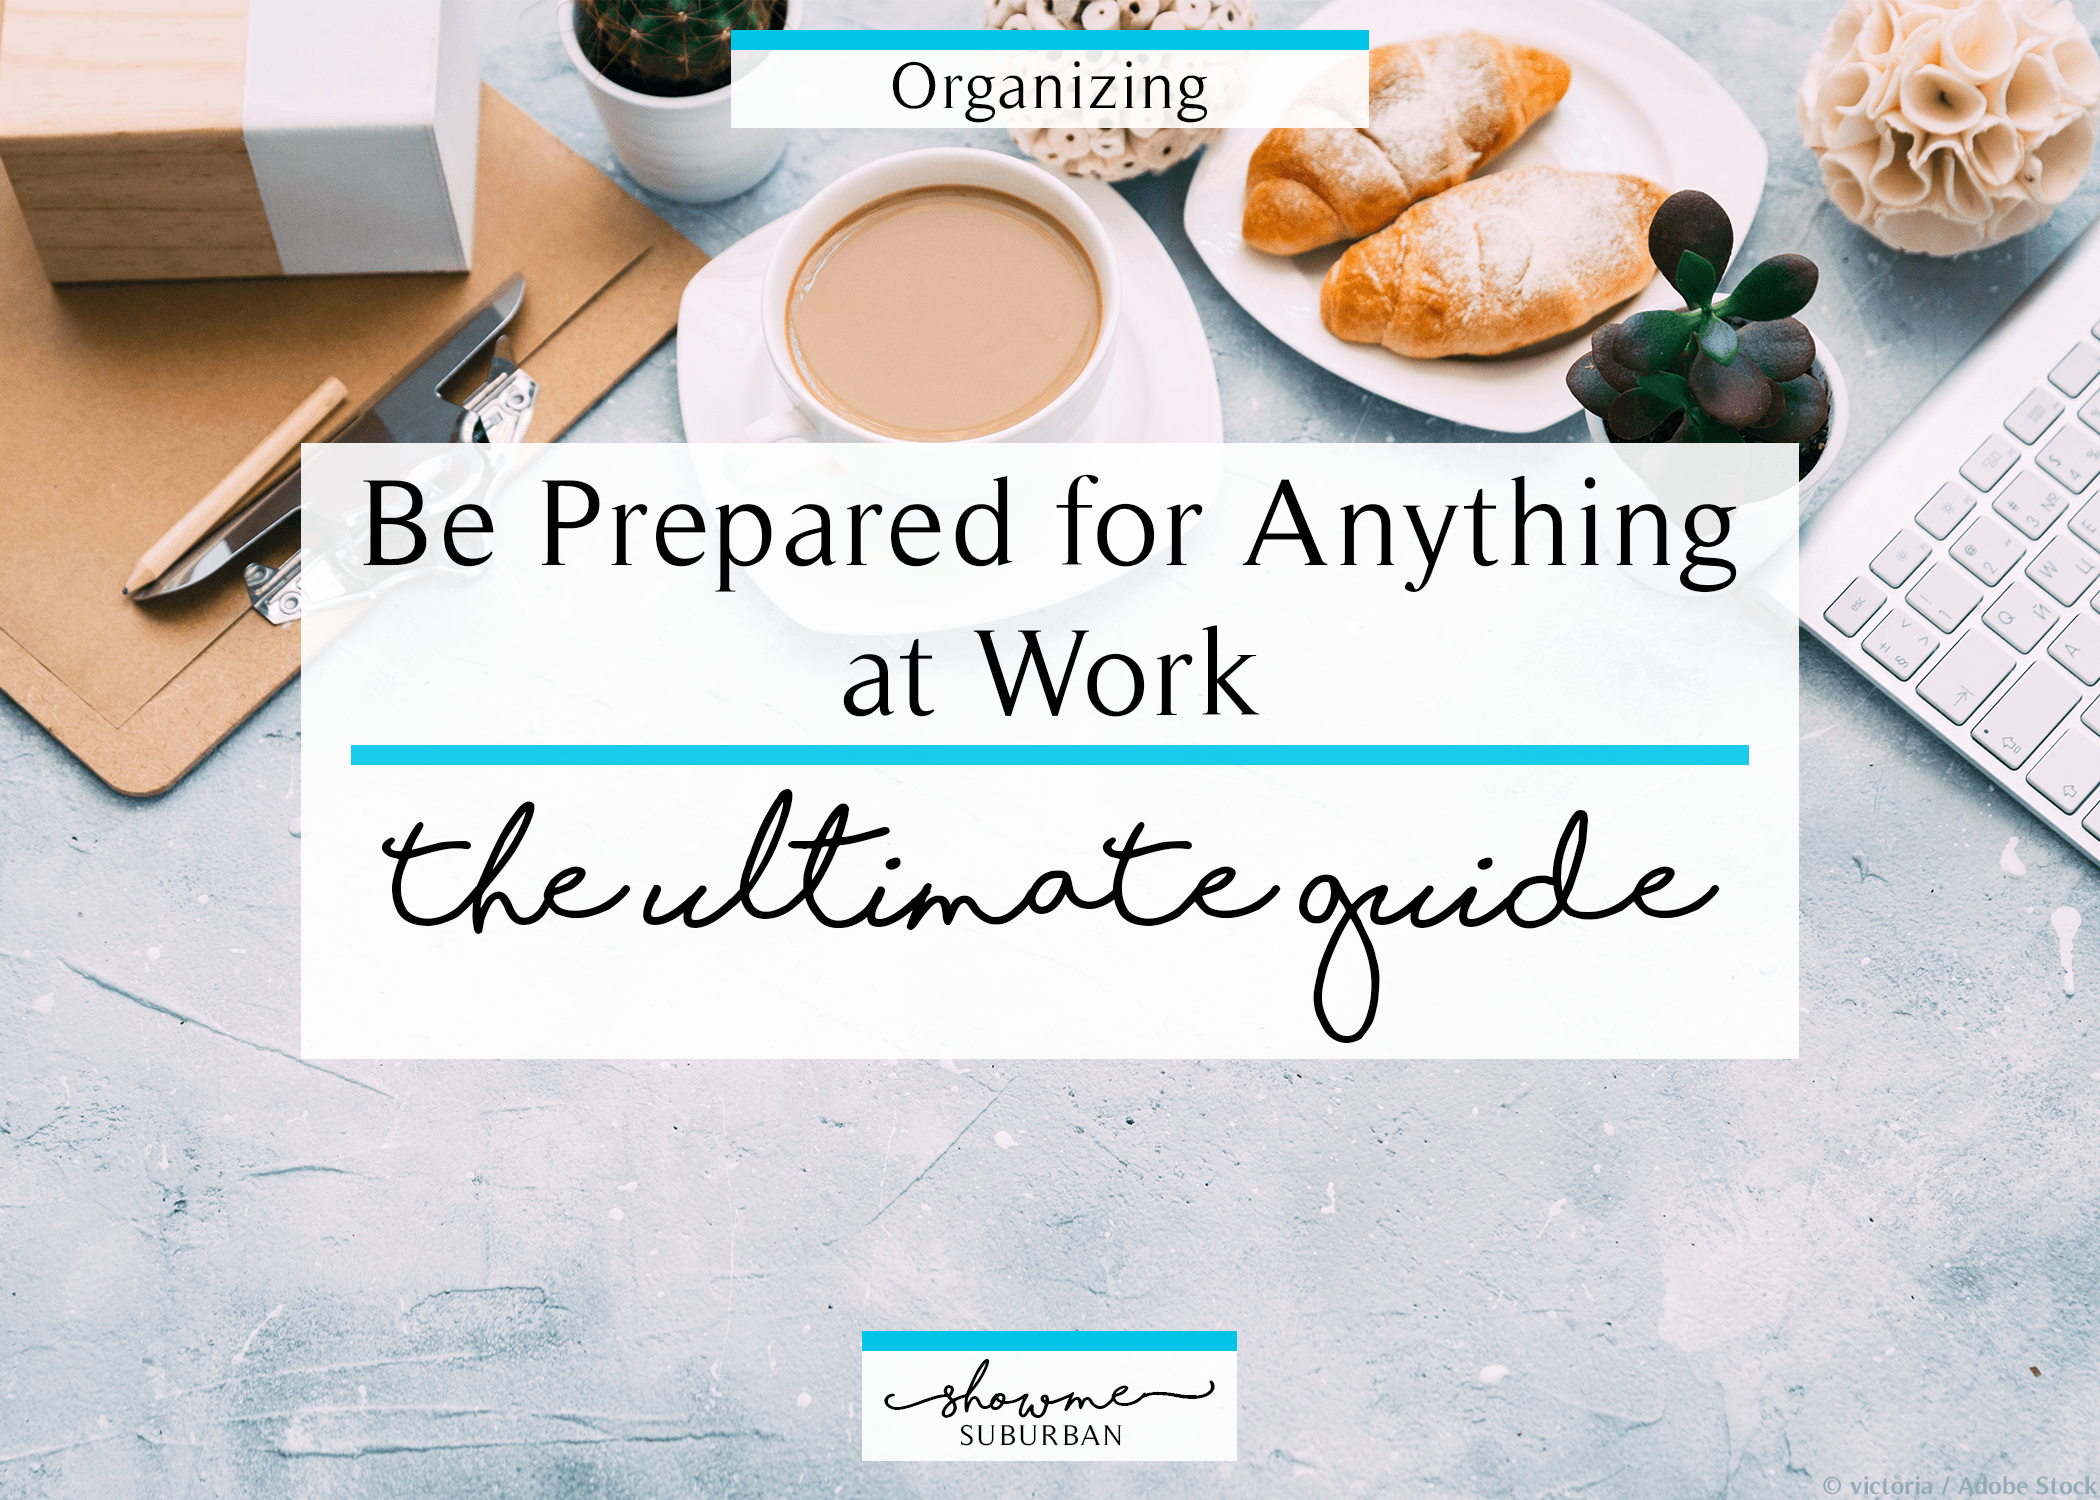 Has a completely avoidable wardrobe or hygiene fail ever derailed your workday? These tips will give you lots of ideas of products and supplies to keep on hand so you'll be prepared for anything at work.